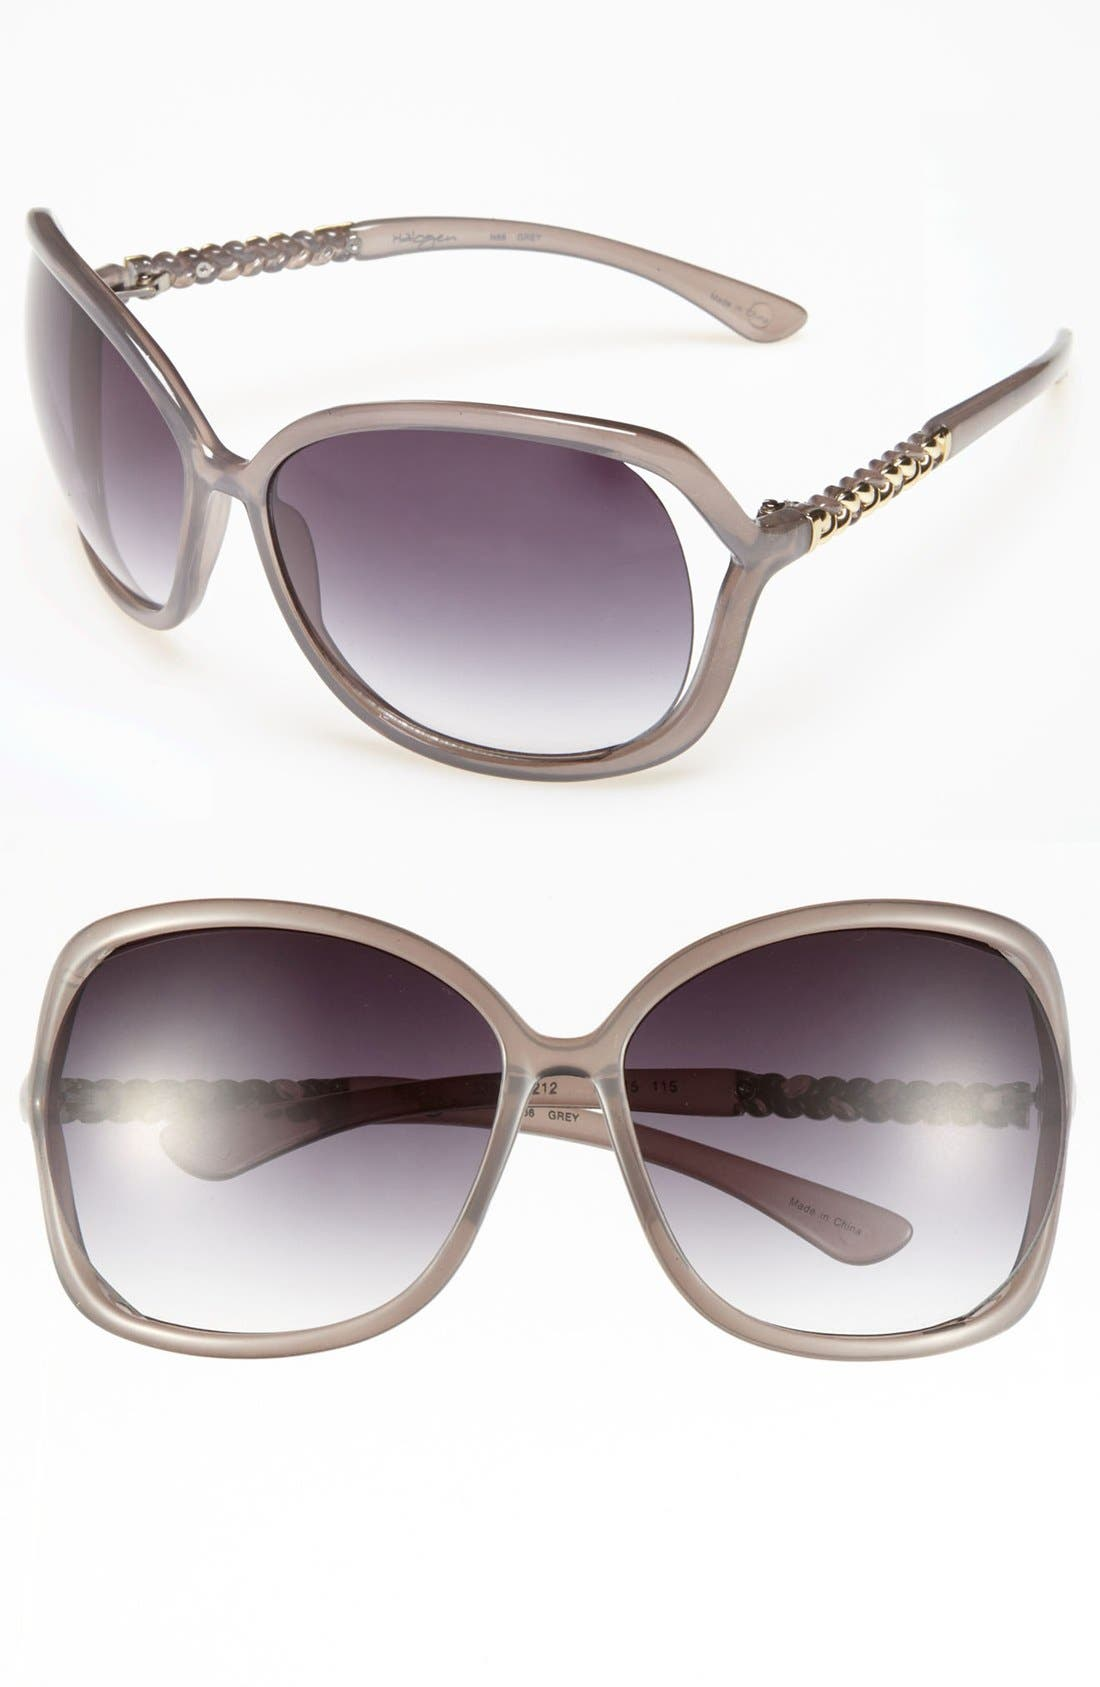 Main Image - Halogen 60mm Cutout Sunglasses